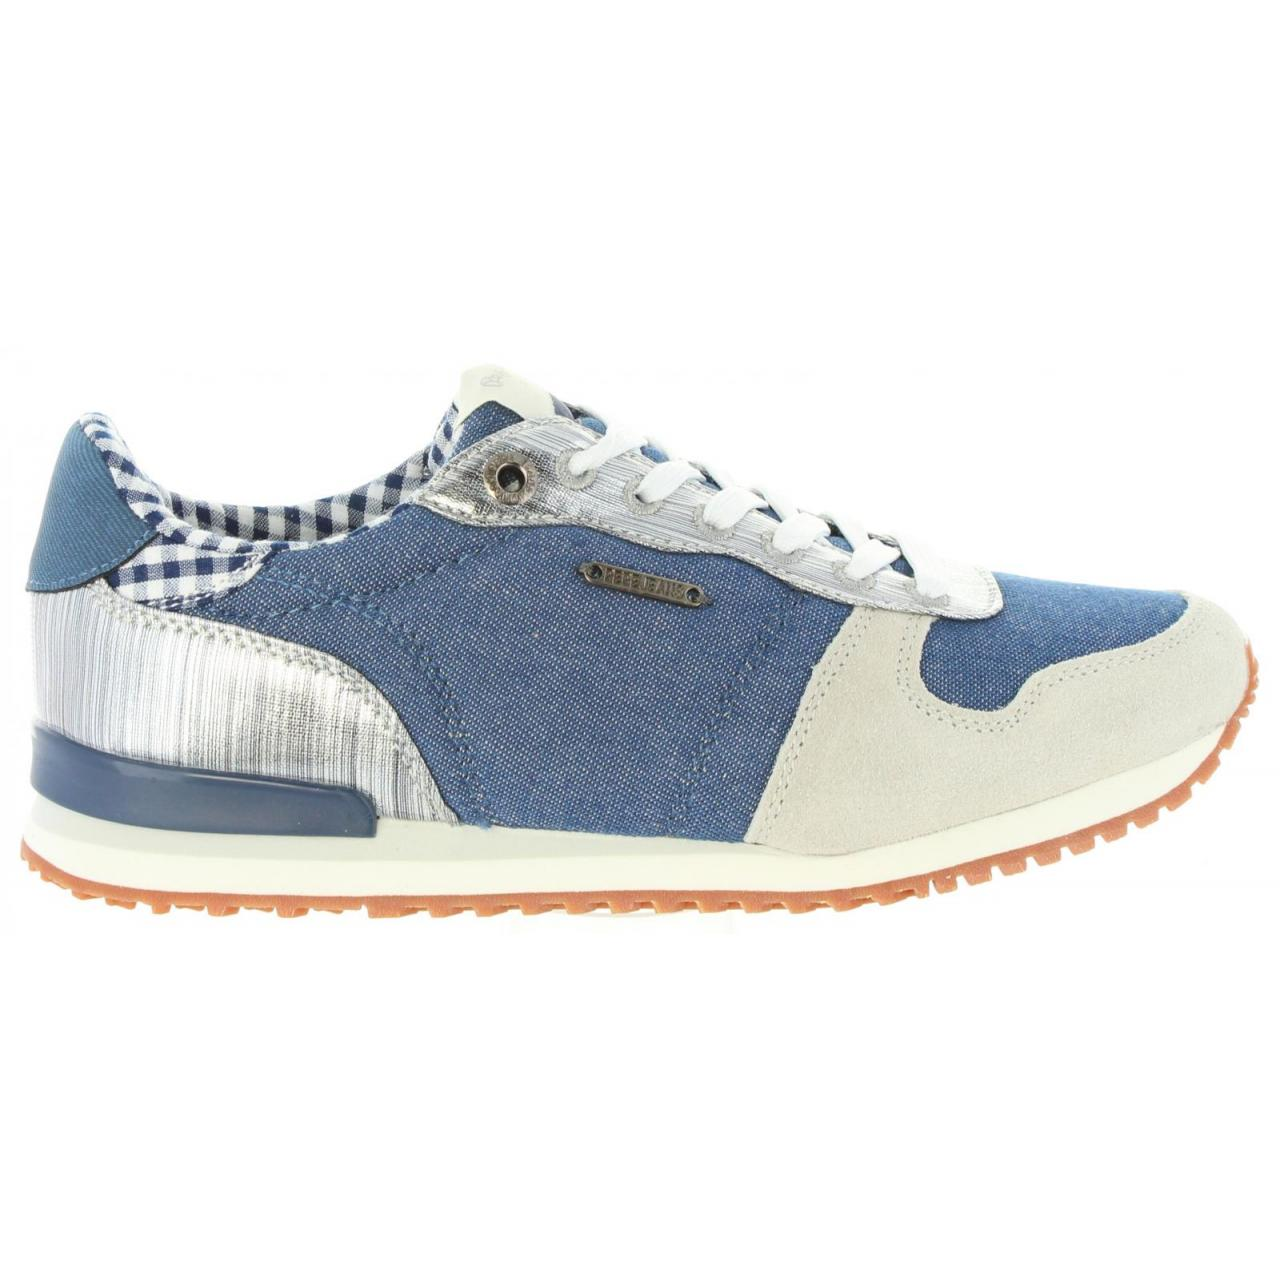 Zapatillas Deporte Pepe Jeans blue - PLS30616 GABLE 585 MARINE